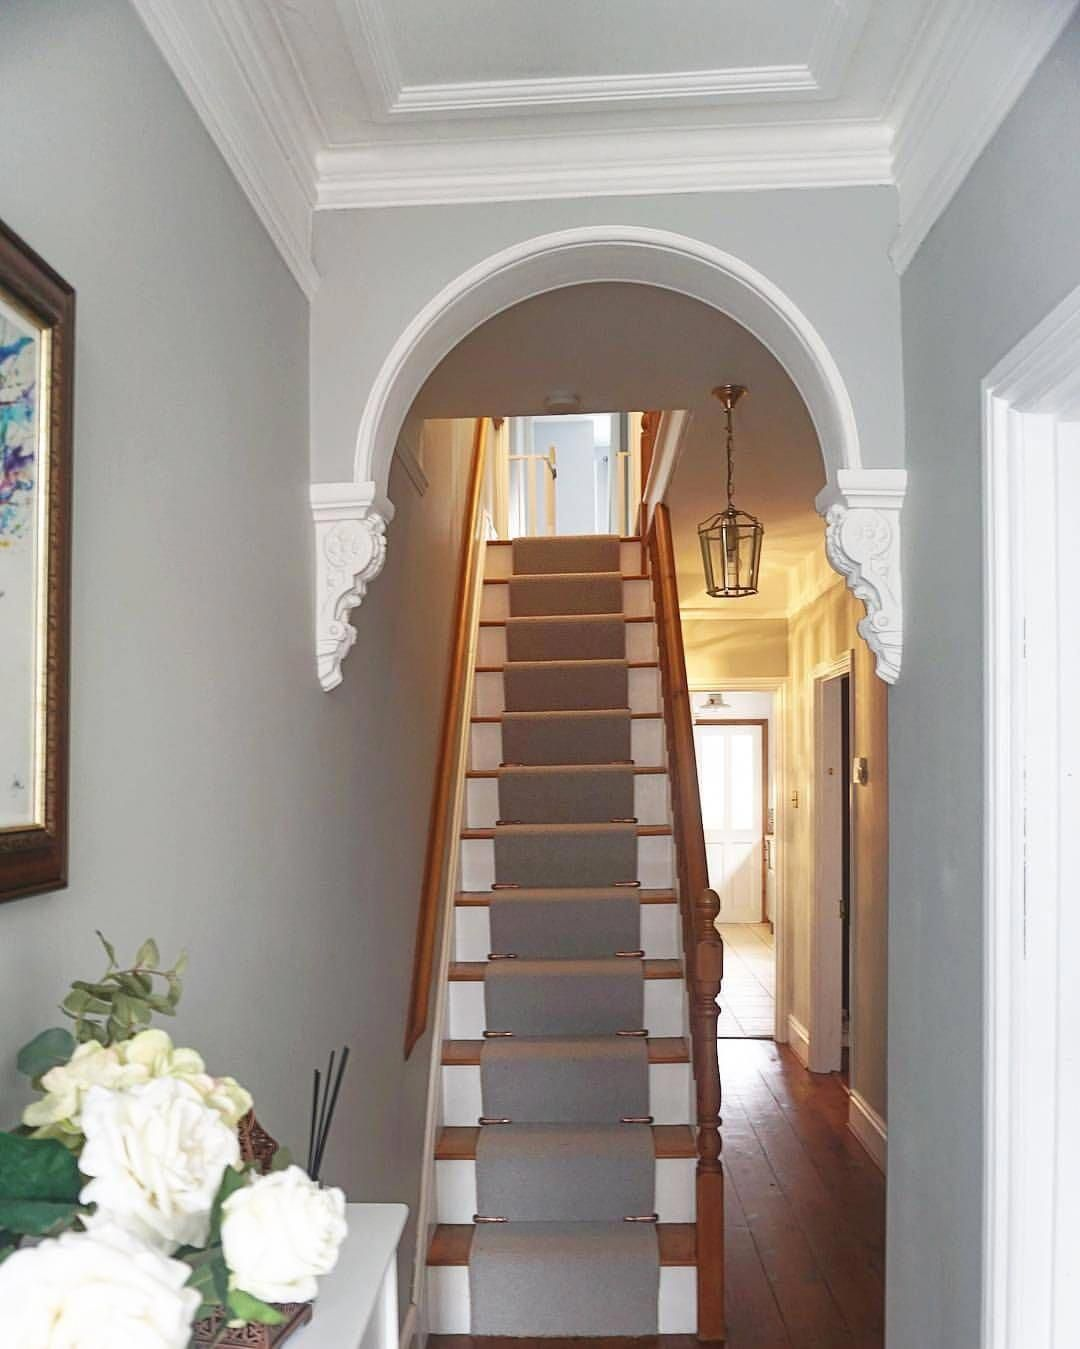 31 Stair Decor Ideas To Make Your Hallway Look Amazing: Corbels On The Stairs #remodelingbeforeandafter